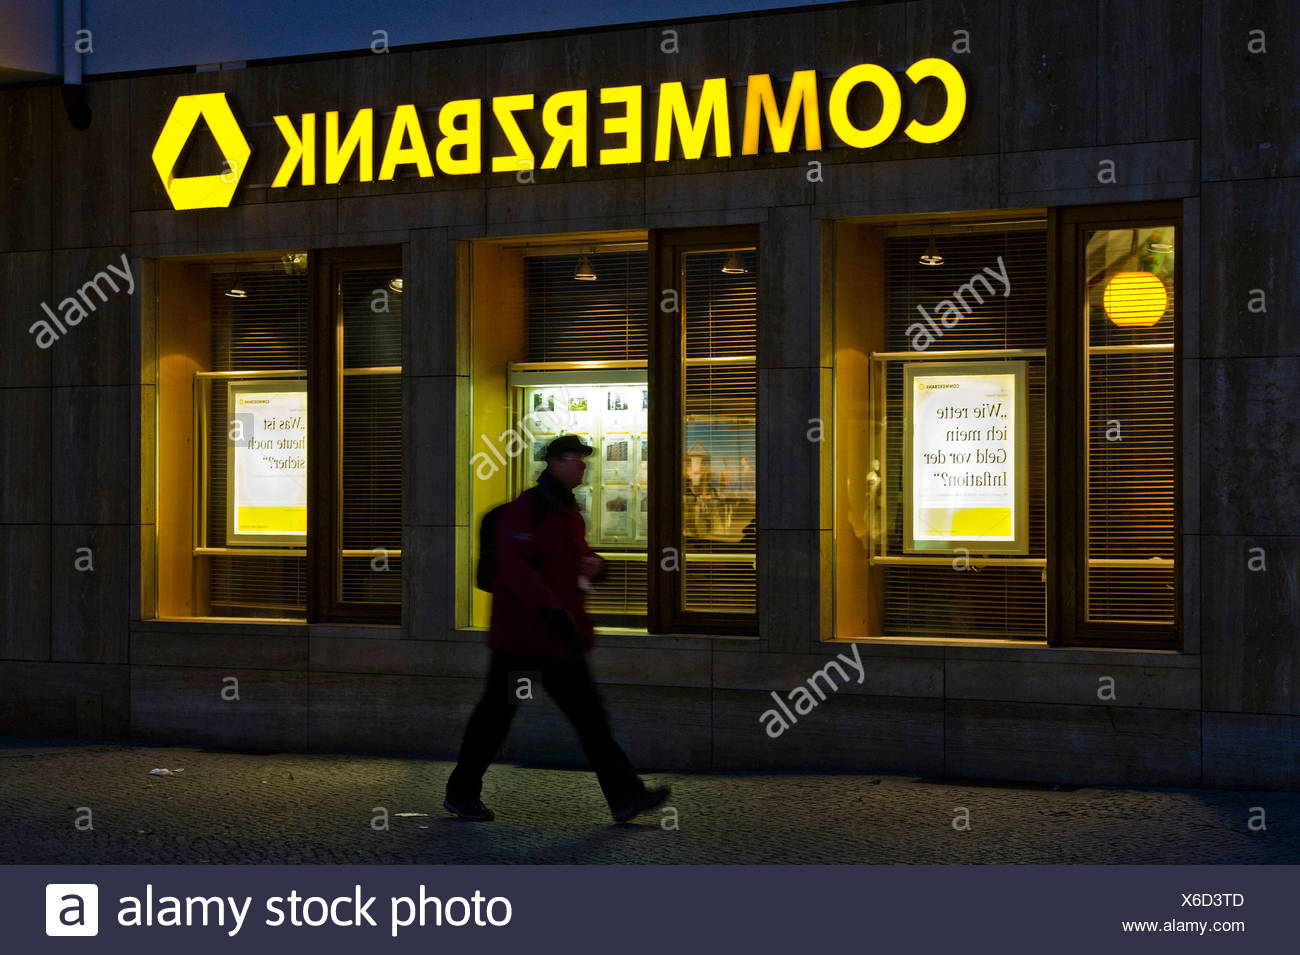 Commerzbank branch - Stock Image